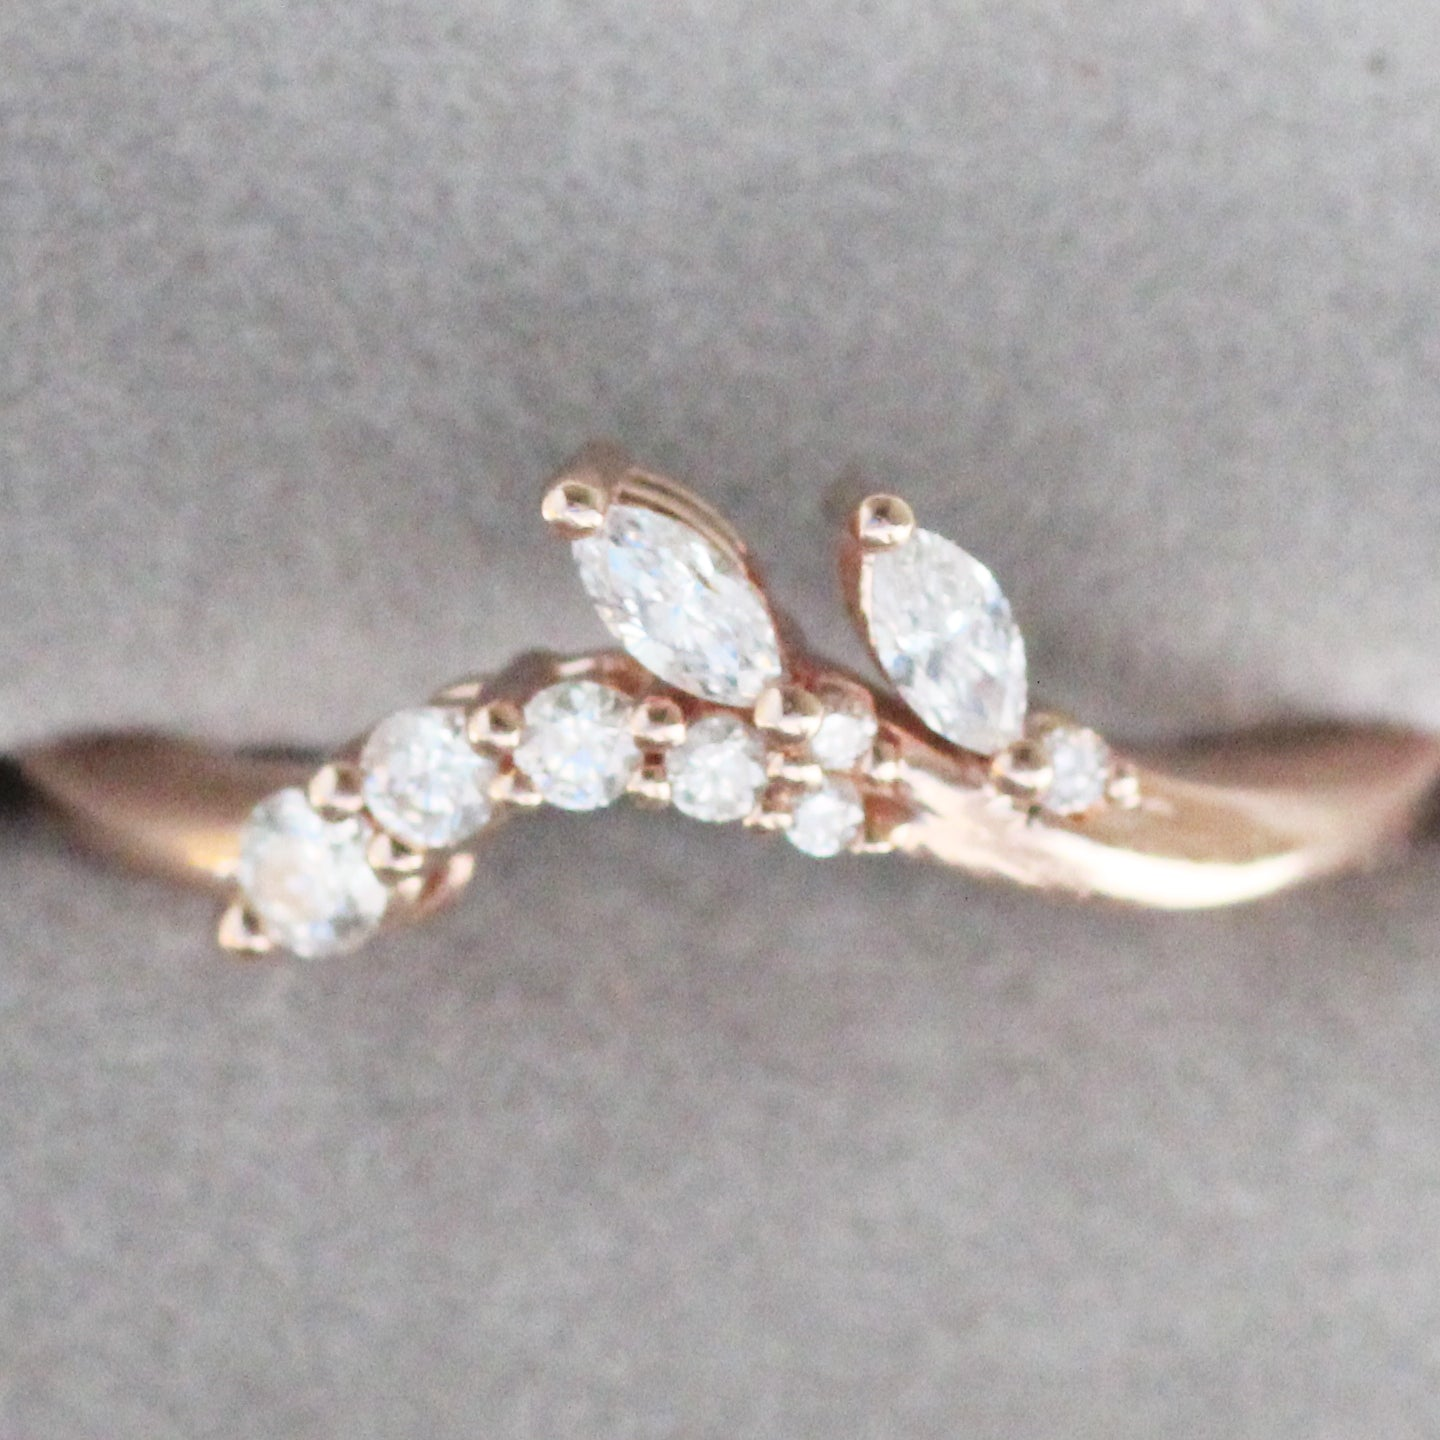 Clarissa - Curved antique style diamond band